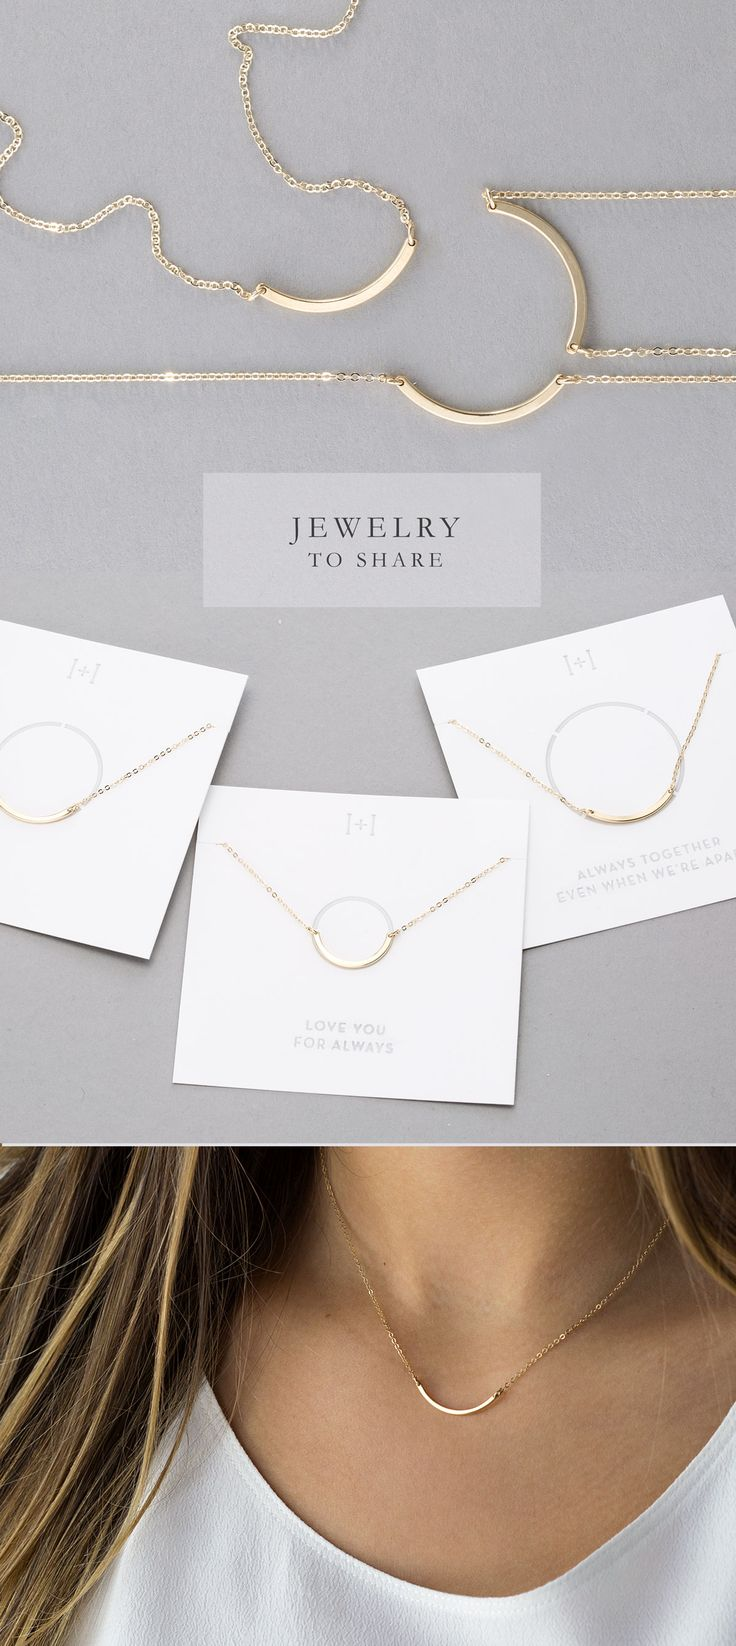 Handmade Friendship Jewelry!  The Perfect Gift to share...in sets of 2, 3 or 4 dainty curve necklaces.  Wear it close to your heart, and when the pieces from the set unite, they will form a complete circle!